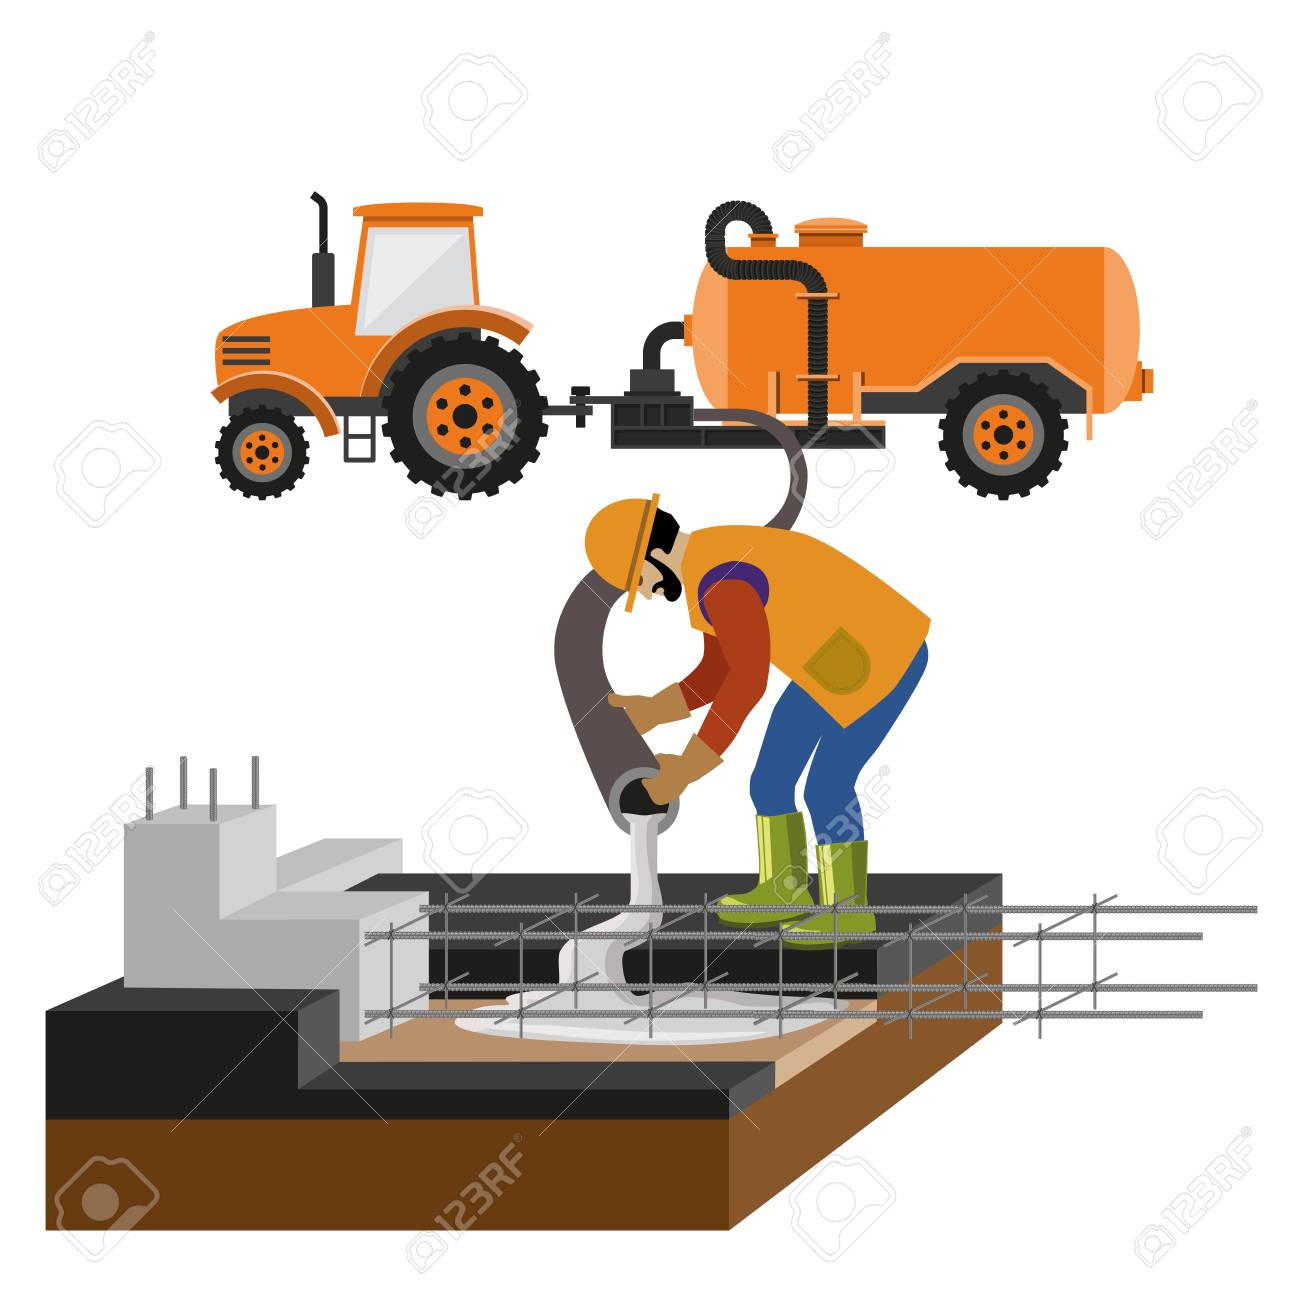 Worker at building site are pouring concrete in mold. Vector illustration isolated on white background - 96924004